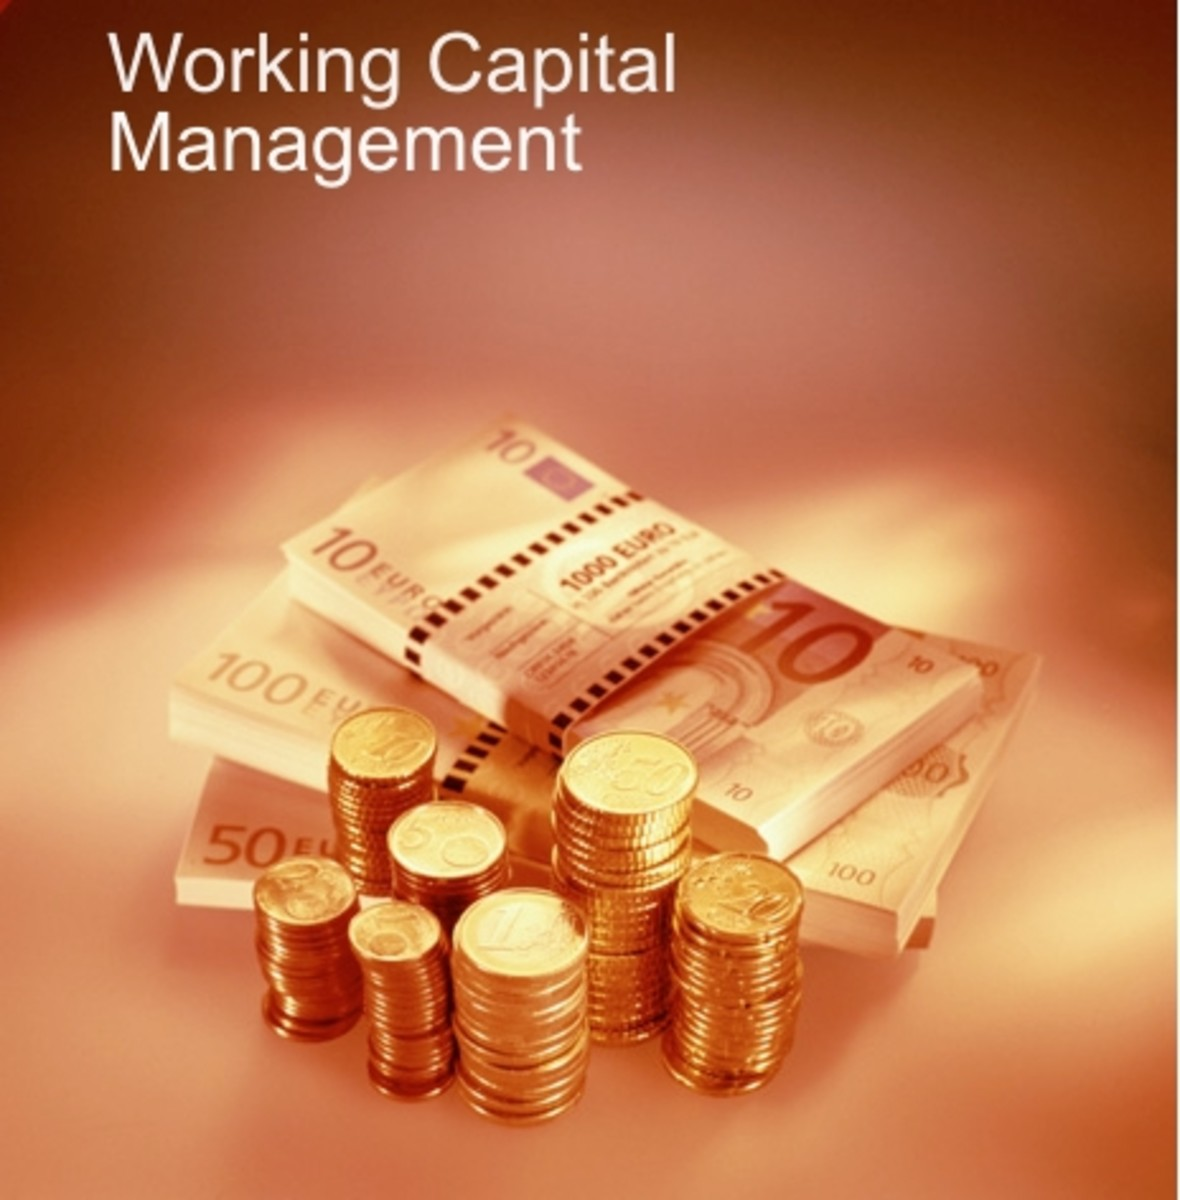 Why should Working Capital be managed efficiently